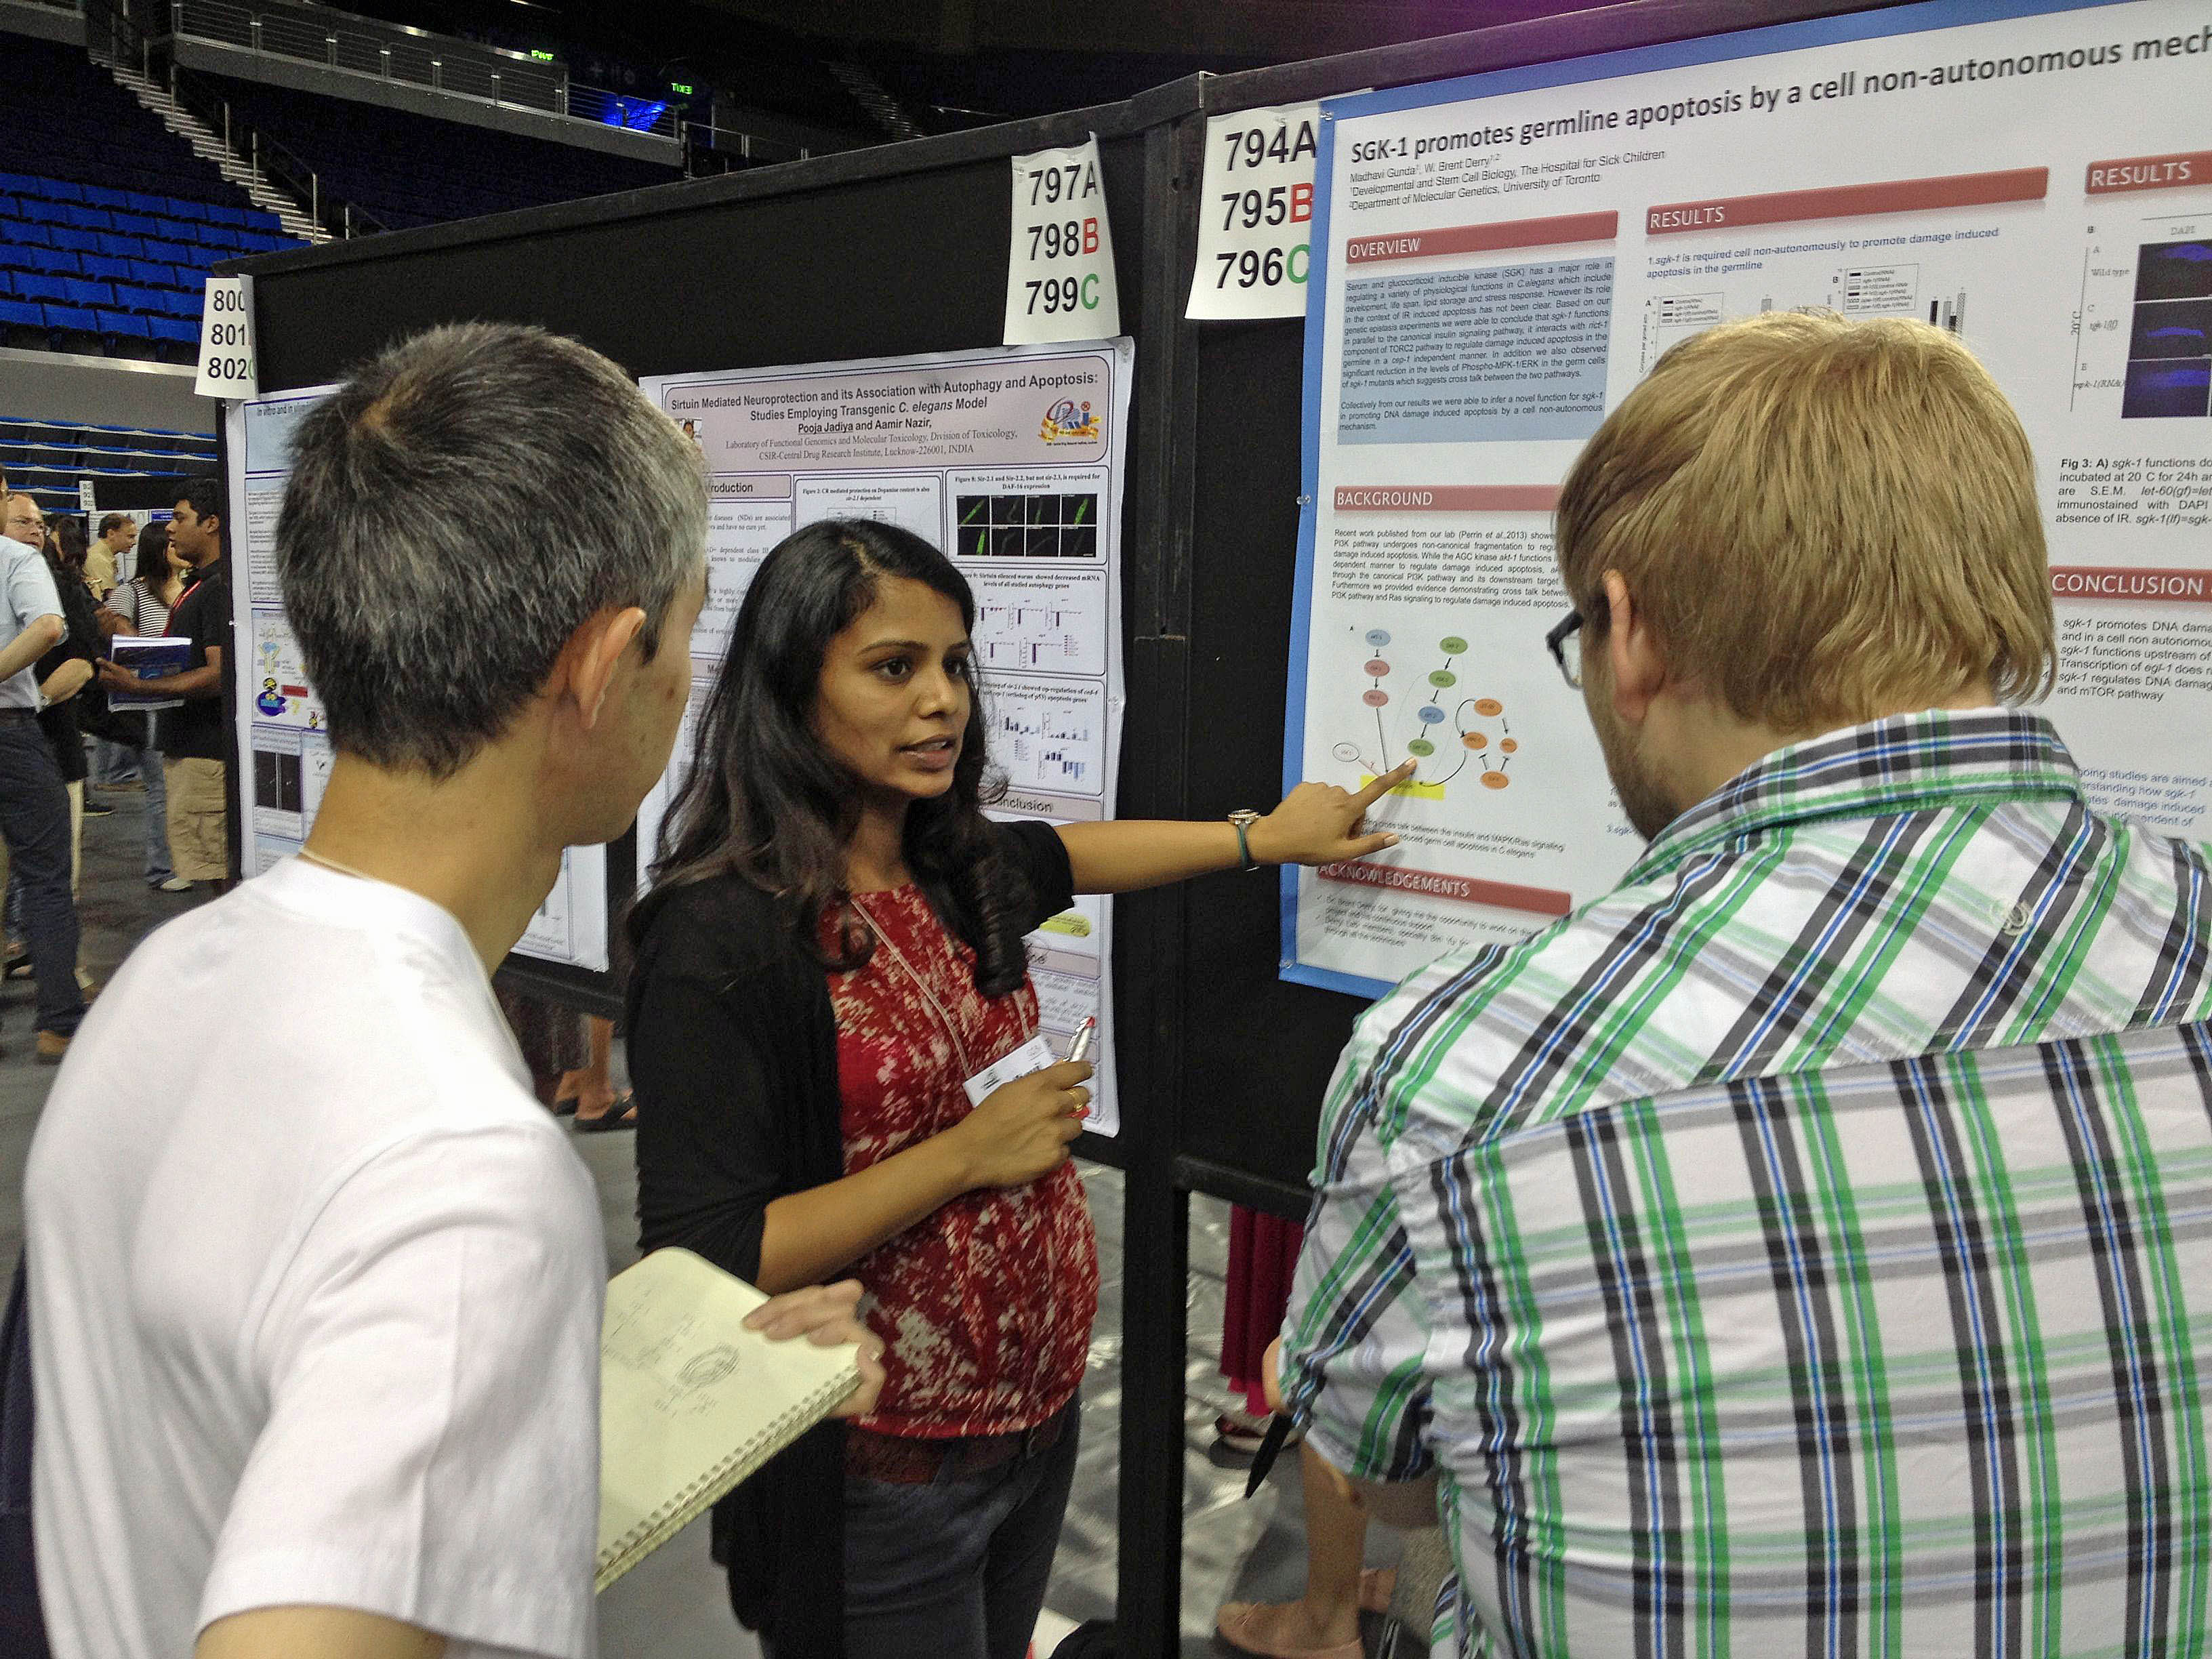 Madhavi presenting her poster at the Worm Meeting